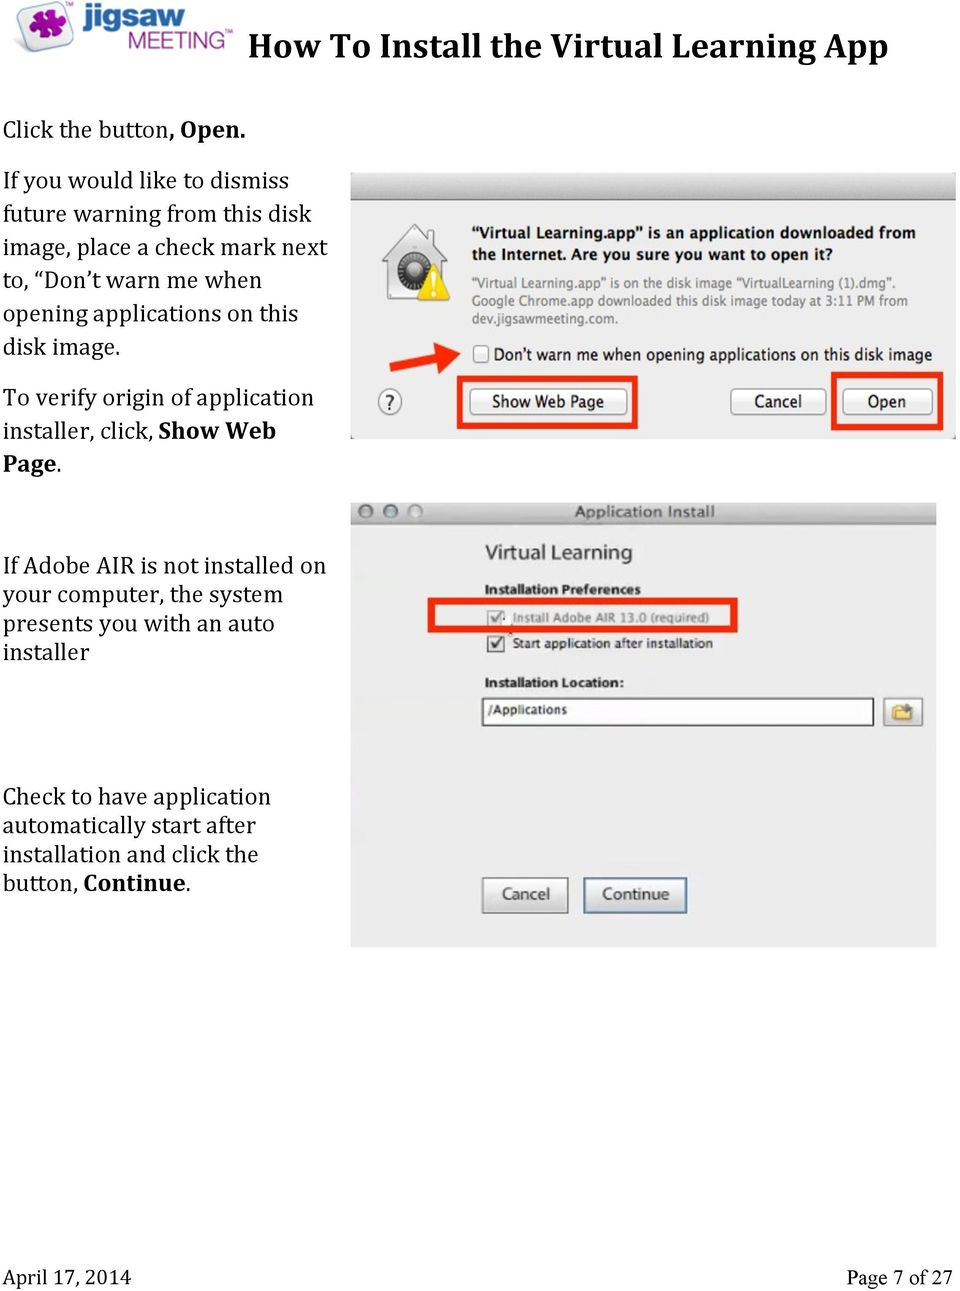 when opening applications on this disk image. To verify origin of application installer, click, Show Web Page.